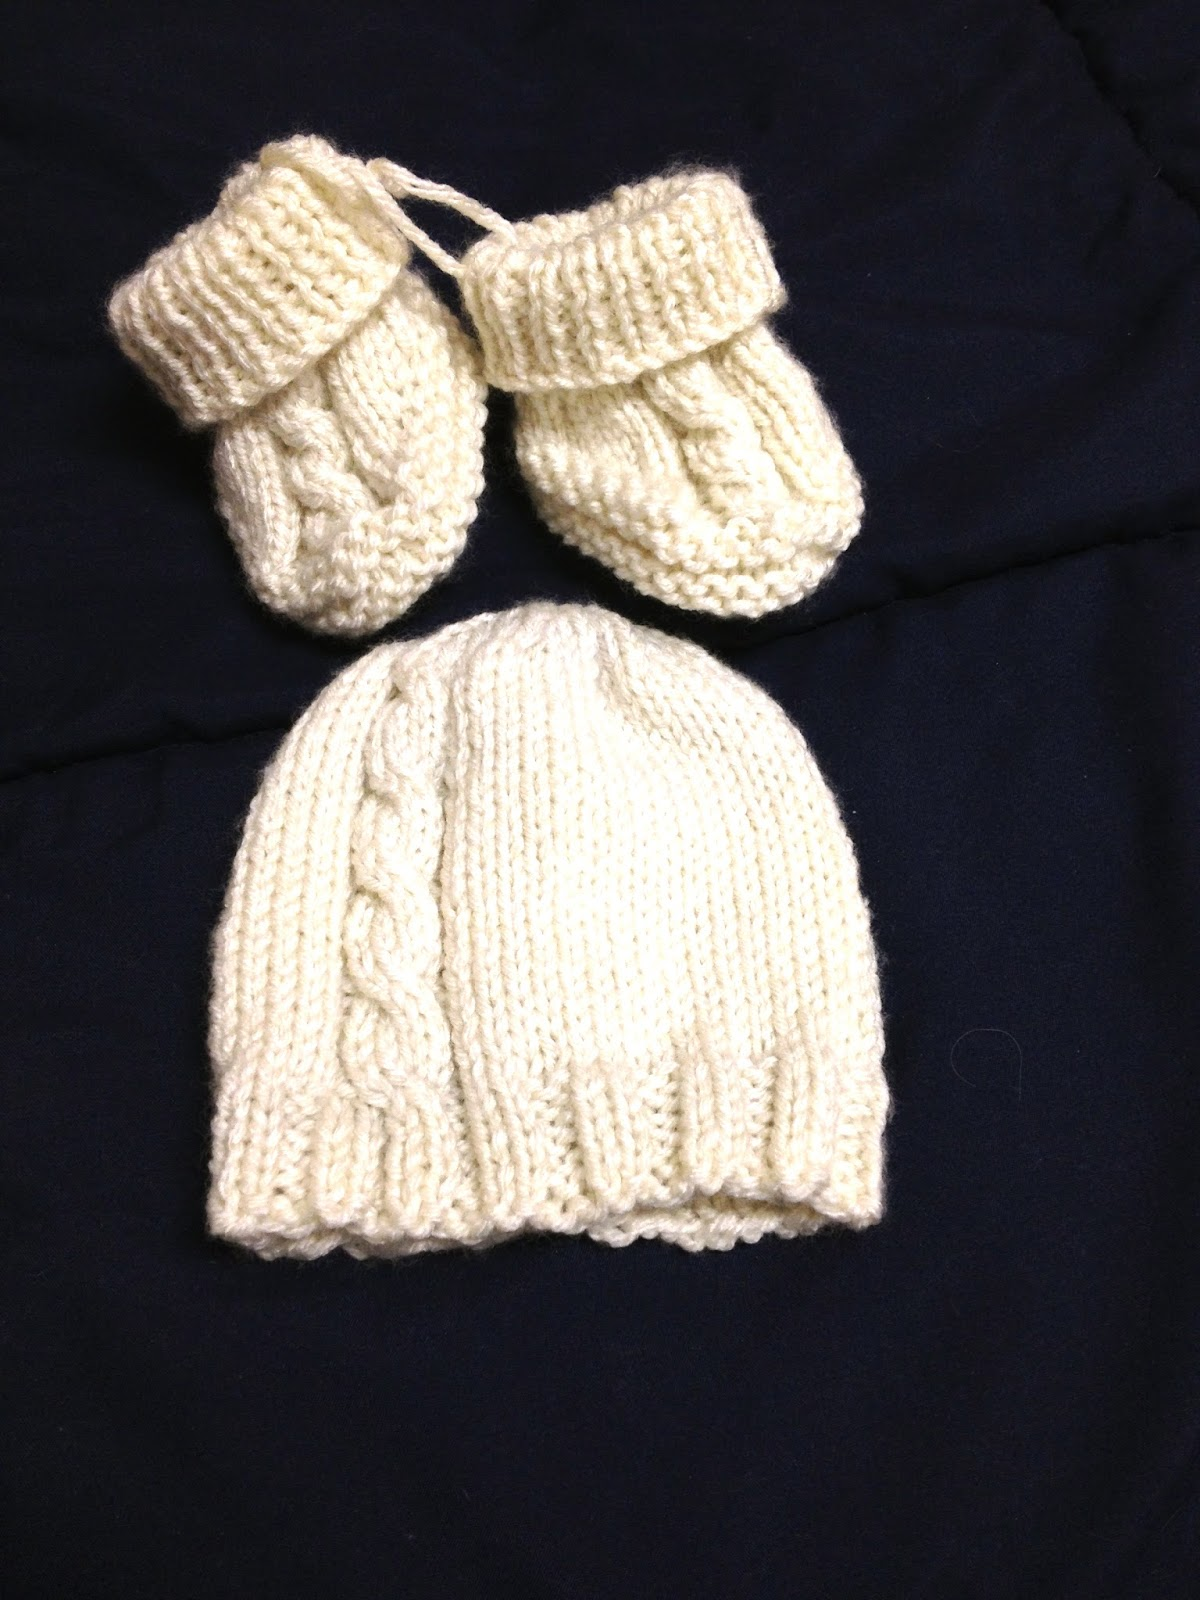 Breiters Two-Needle Cable Baby Booties A Time to Knit